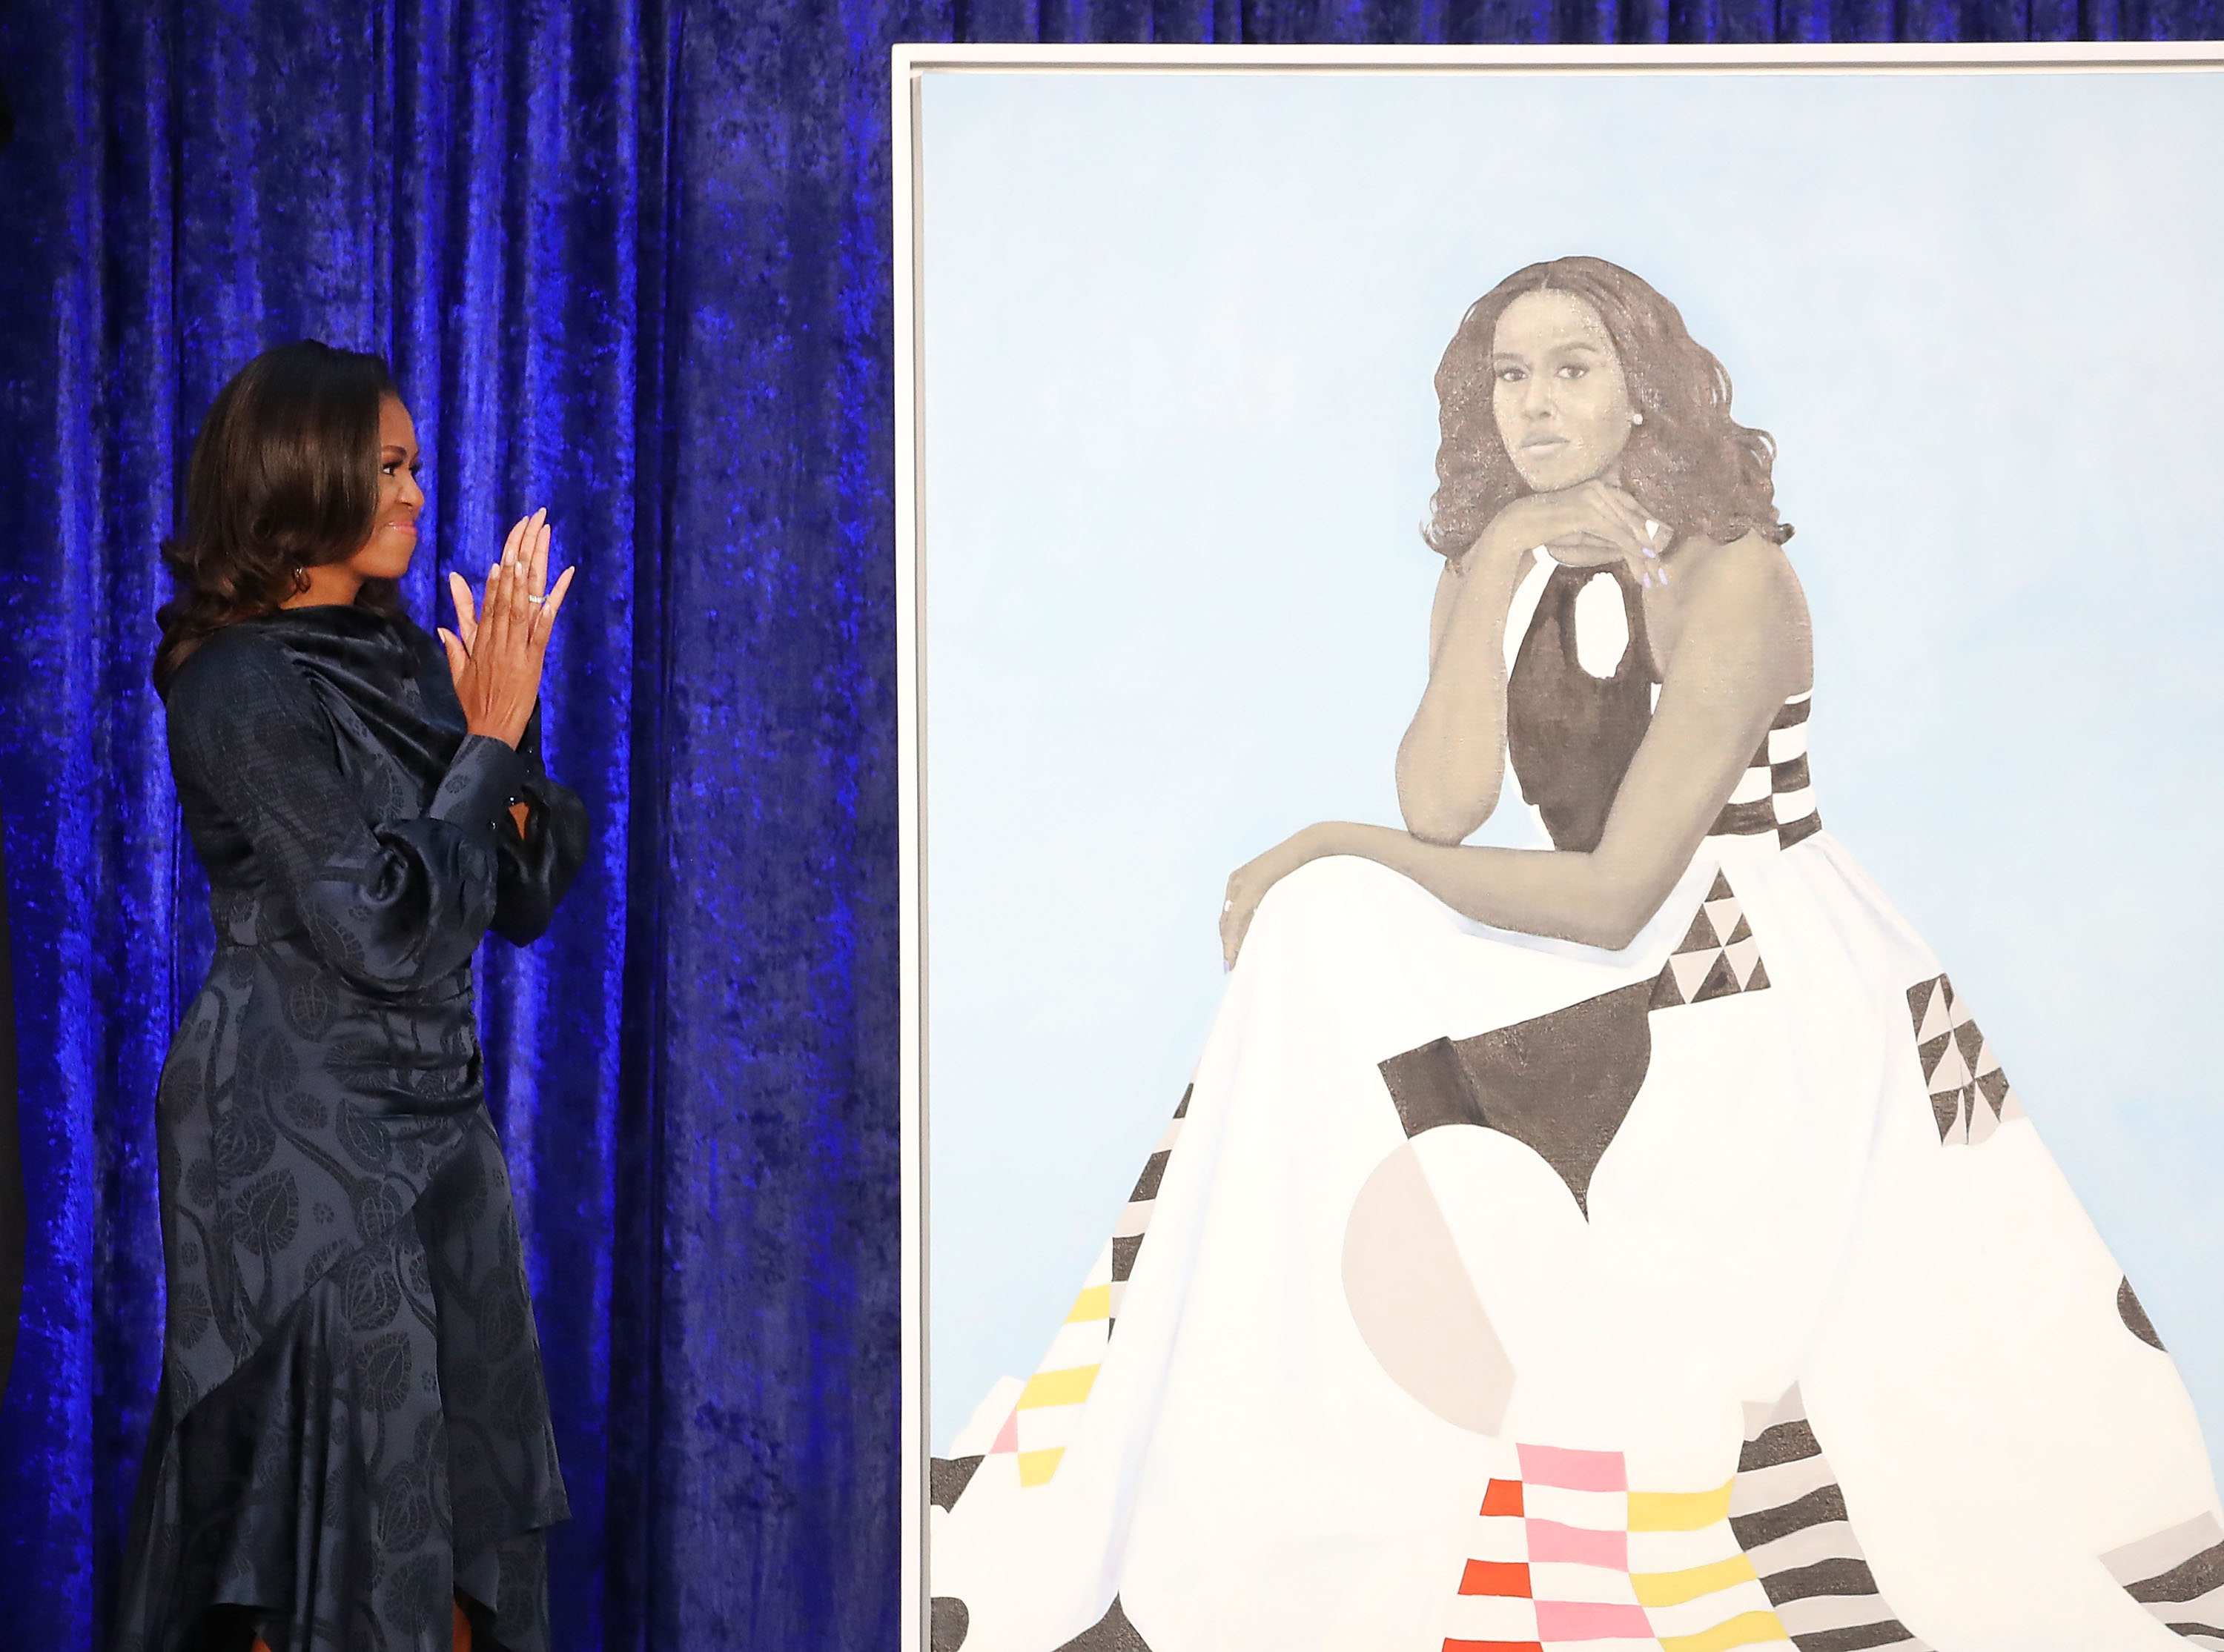 Former US first lady Michelle Obama looks at her newly unveiled portrait during a ceremony at the Smithsonian's National Portrait Gallery, on February 12, 2018 in Washington, DC. The portraits were commissioned by the Gallery, for Kehinde Wiley to create President Obama's portrait, and Amy Sherald that of Michelle Obama.